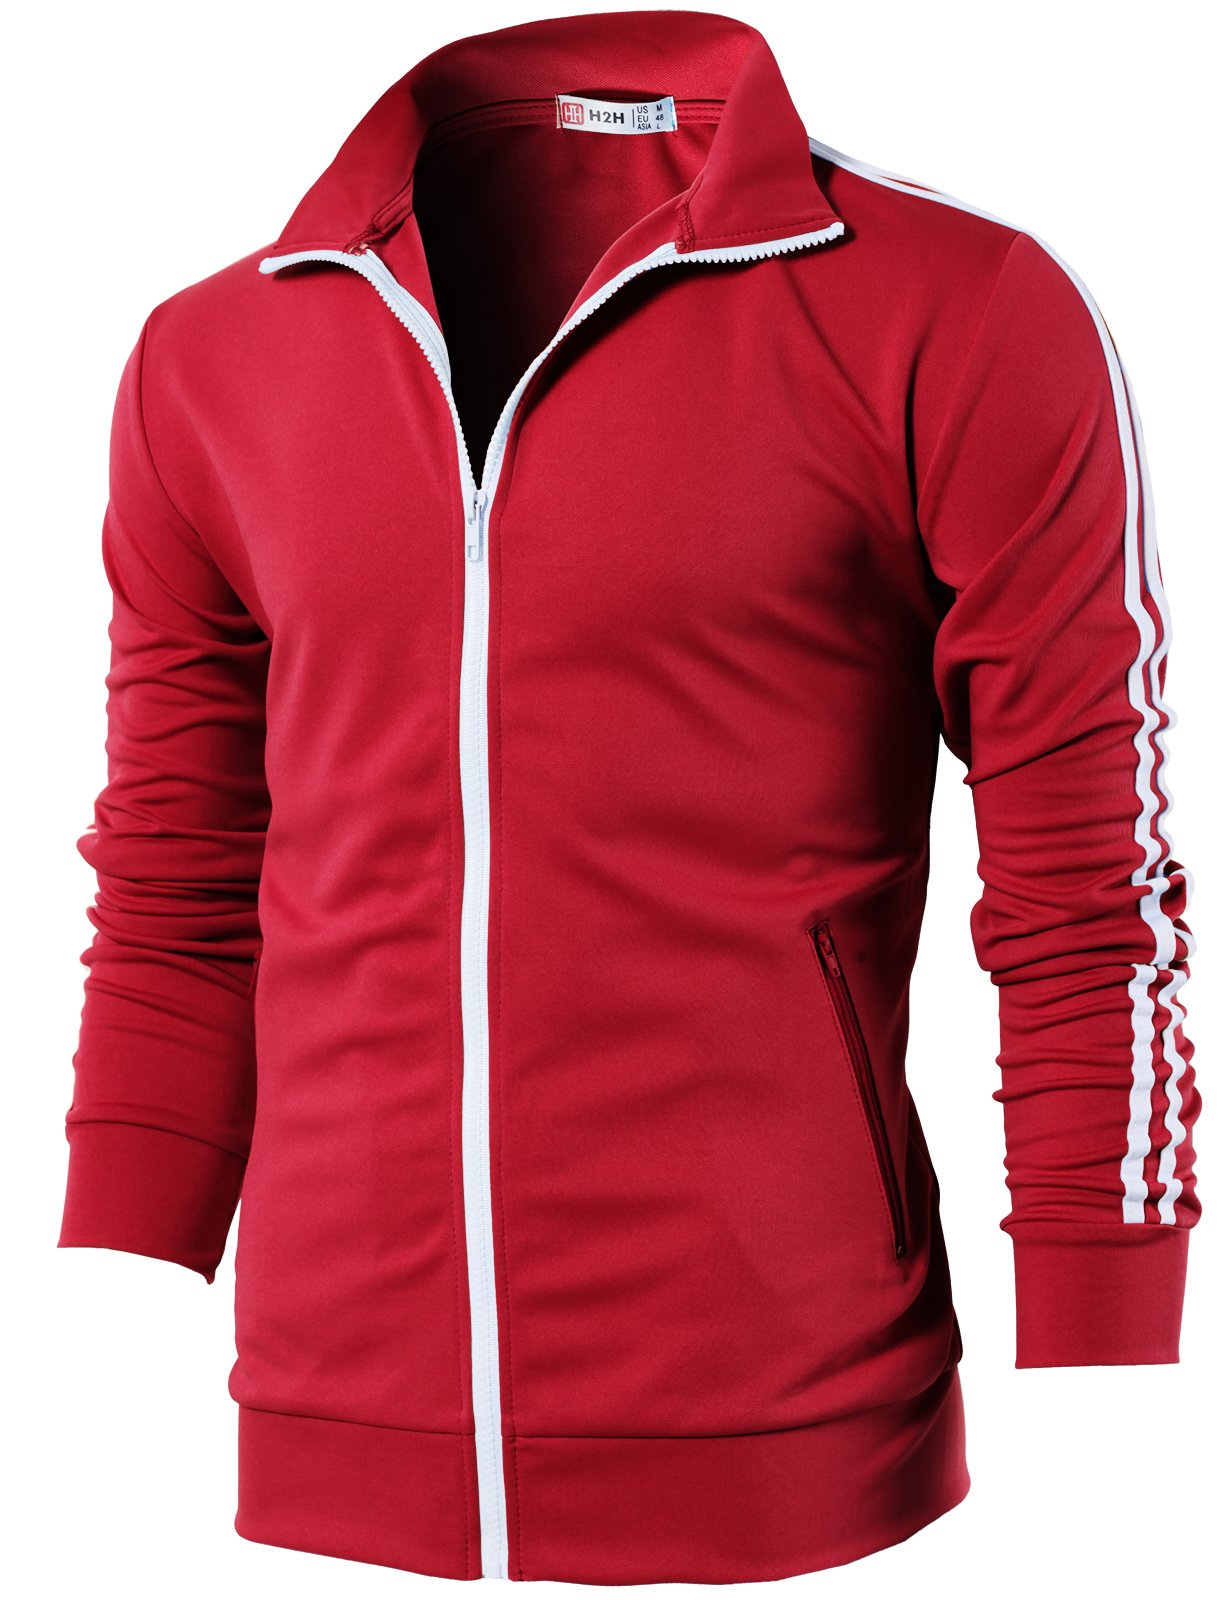 H2H Mens Slim Fit Basic Zip-up Long Sleeves Training Jacket Red US L/Asia XL (CMOJA0103) by H2H